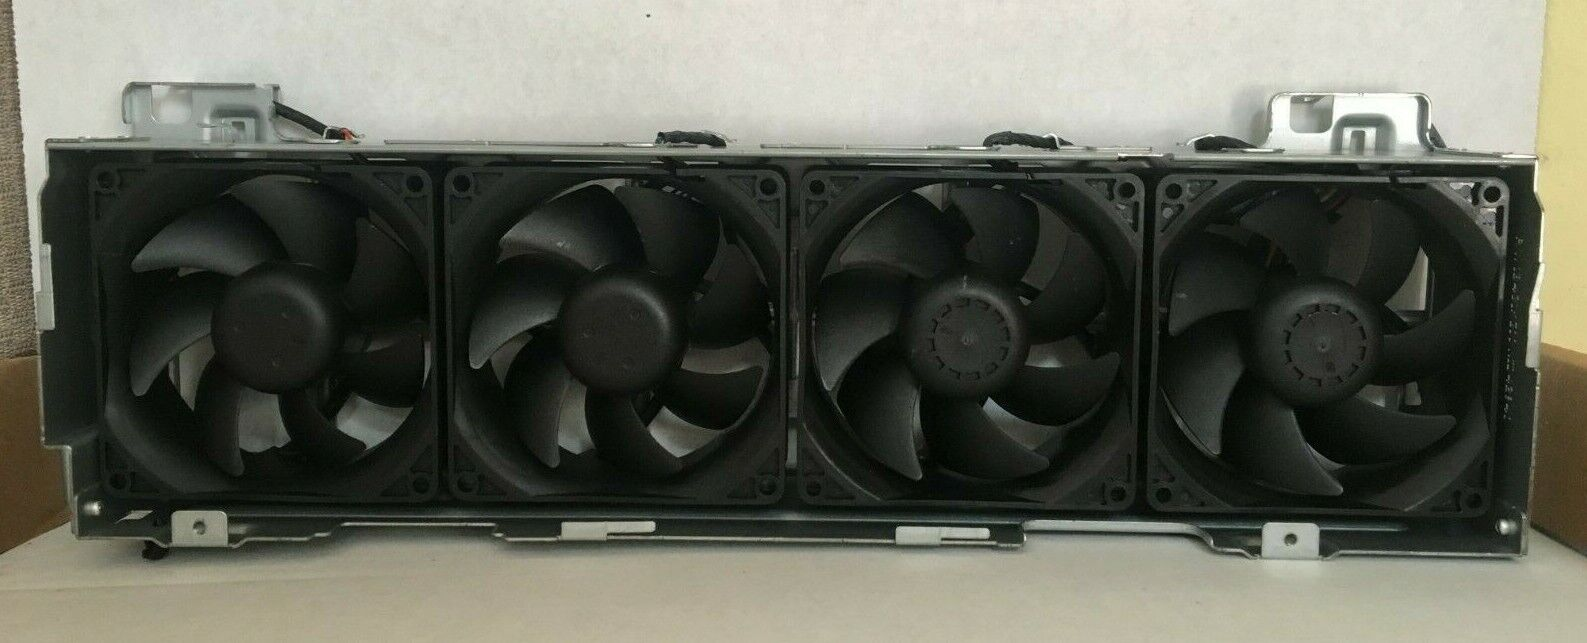 Genuine Dell T7920 Workstation Chassis 4 Front Cooling Fan Frame Assembly 443WR